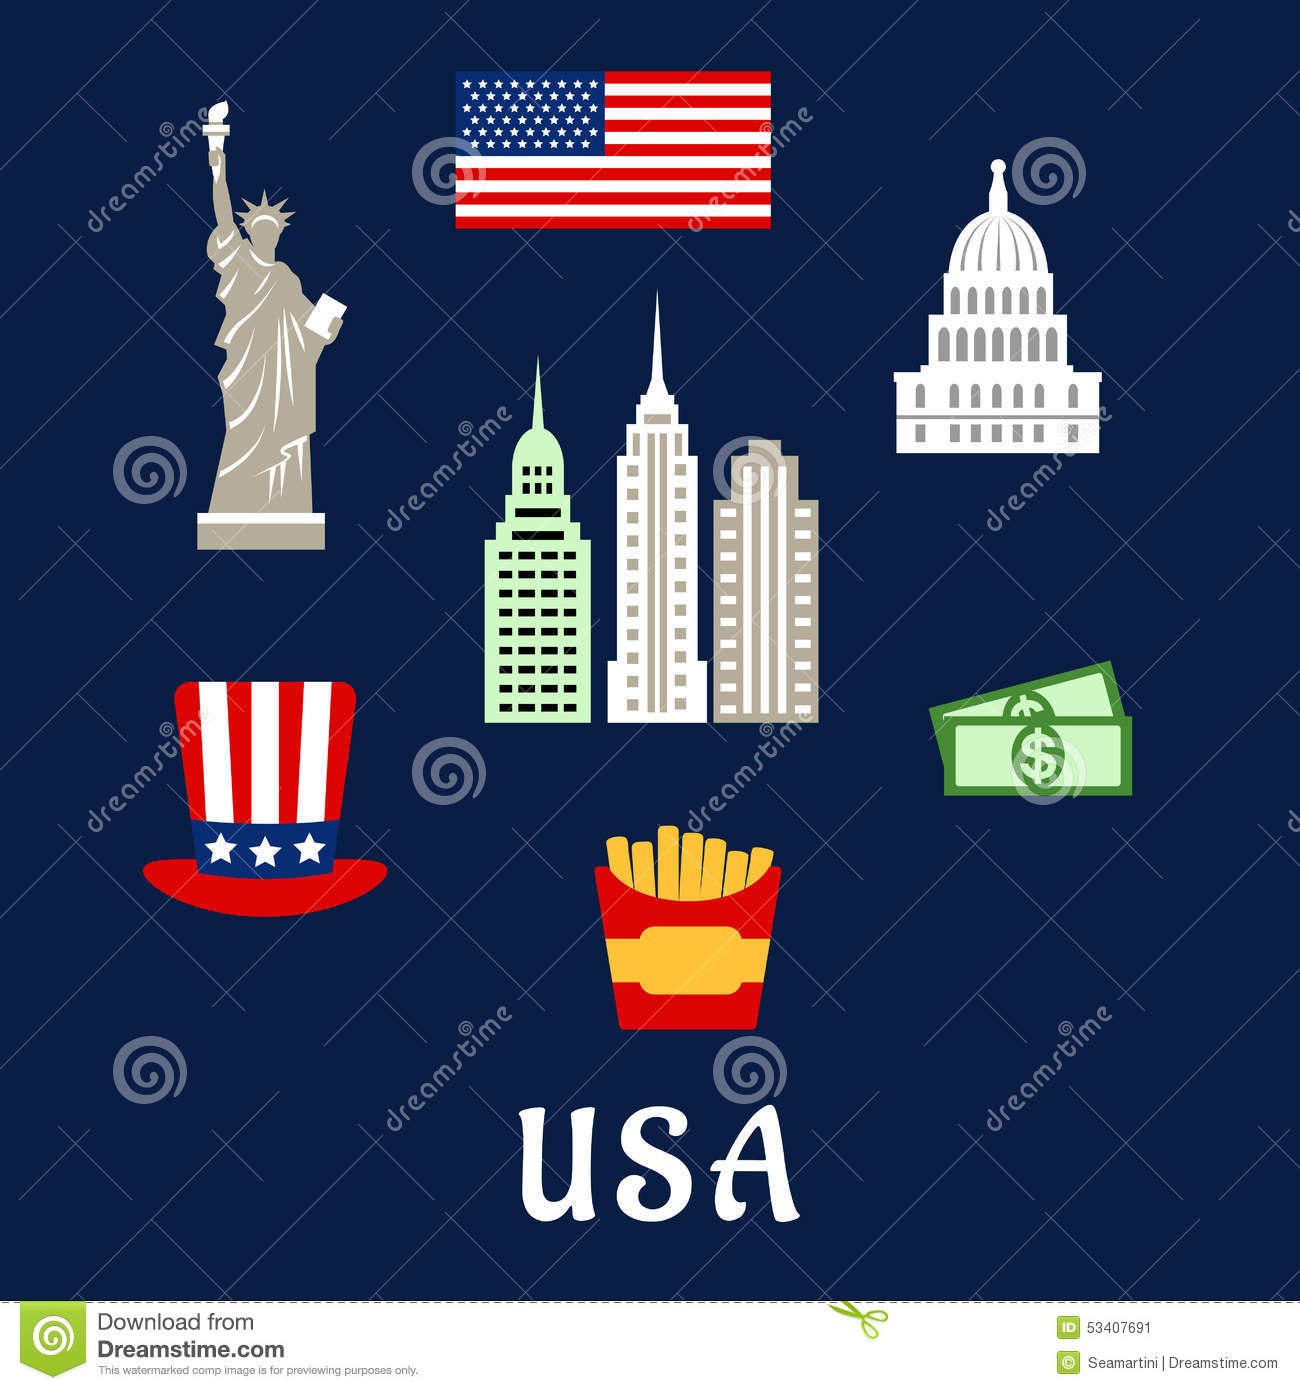 usa famous architecture and culture symbols stock vector us flag clip art vector us flag clip art free